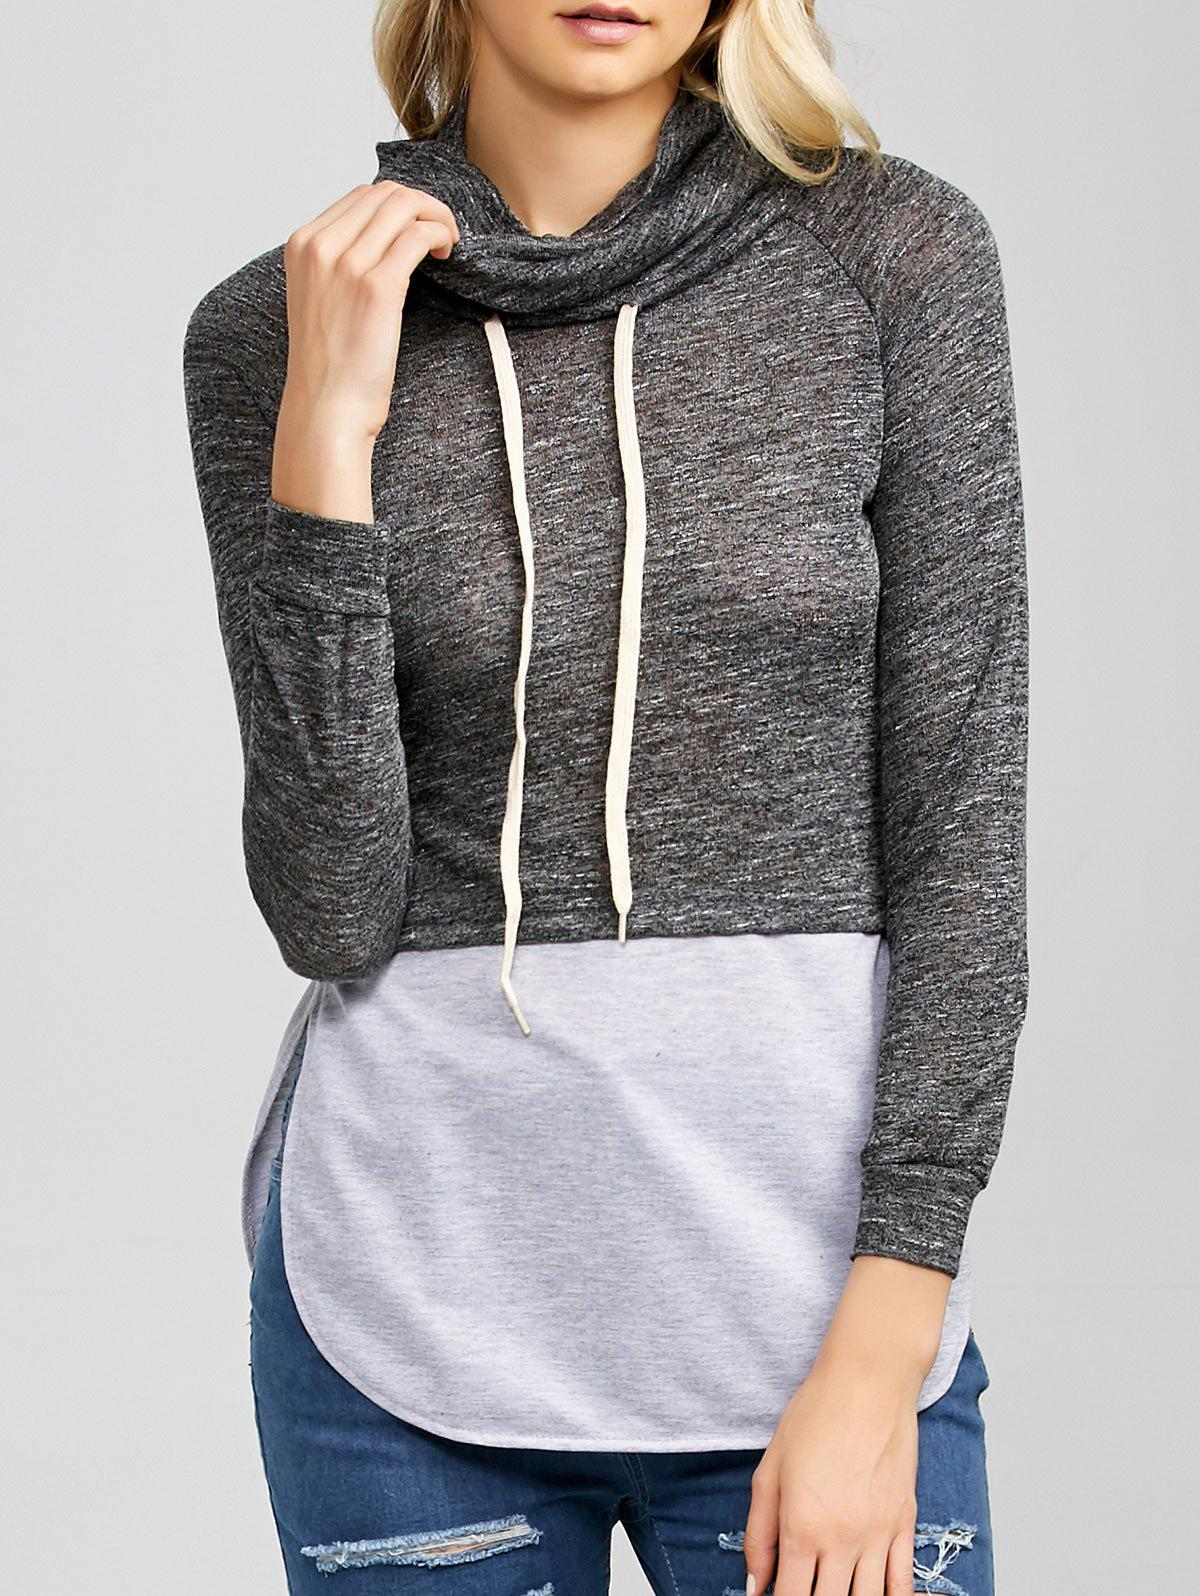 Heather cordes Spliced ​​Hoodie - gris foncé S